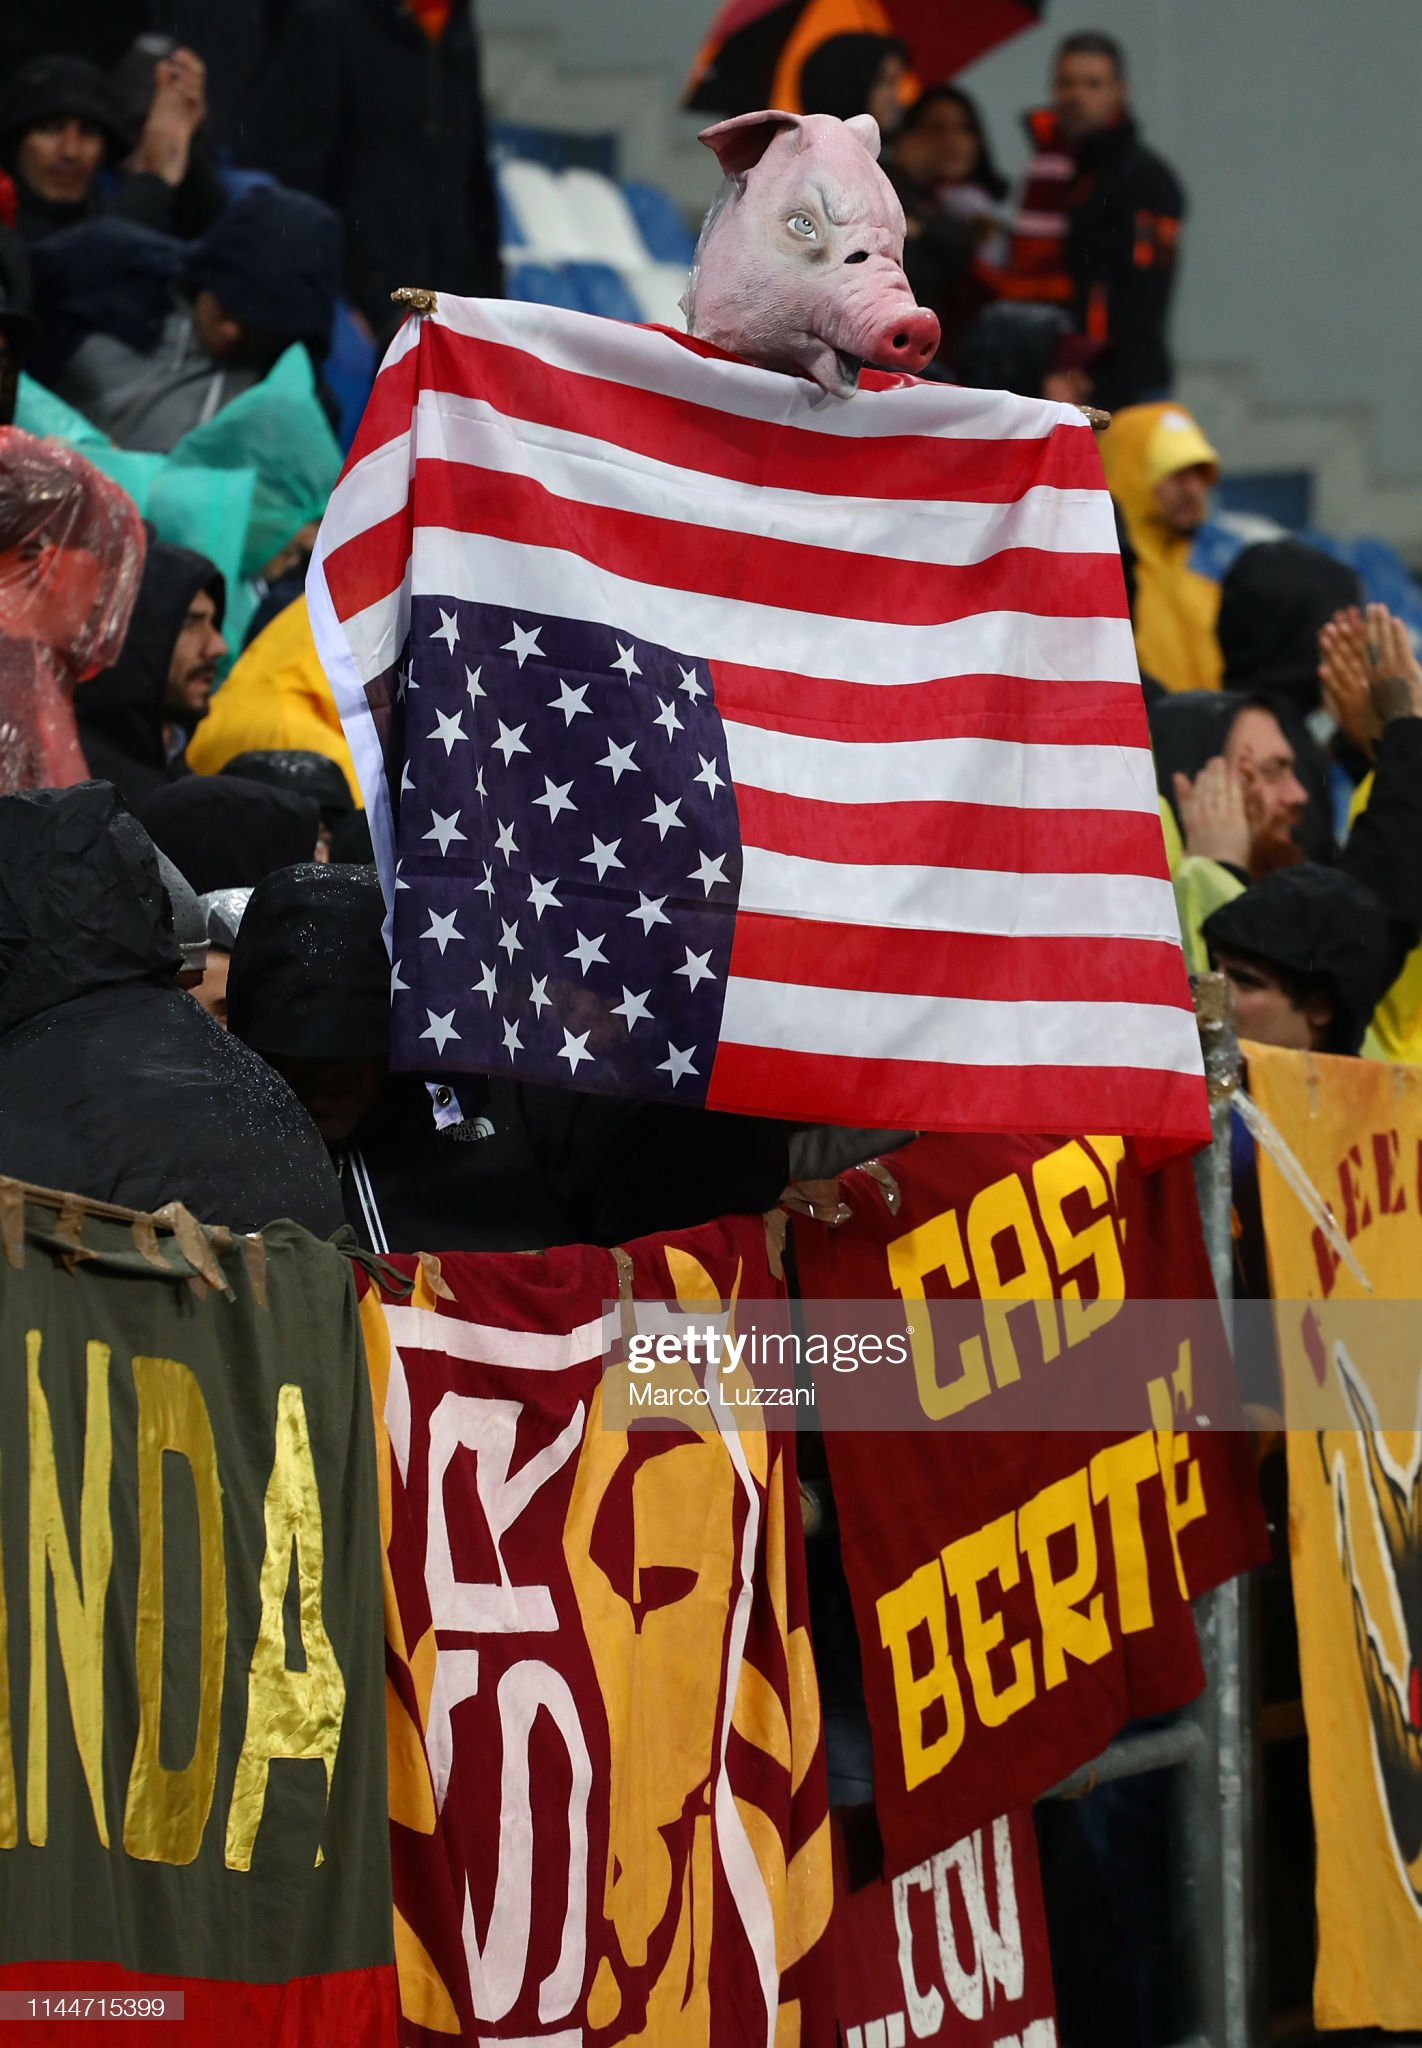 the-as-roma-fans-show-an-upside-down-us-flag-before-the-serie-a-match-picture-id1144715399?s=2048x2048